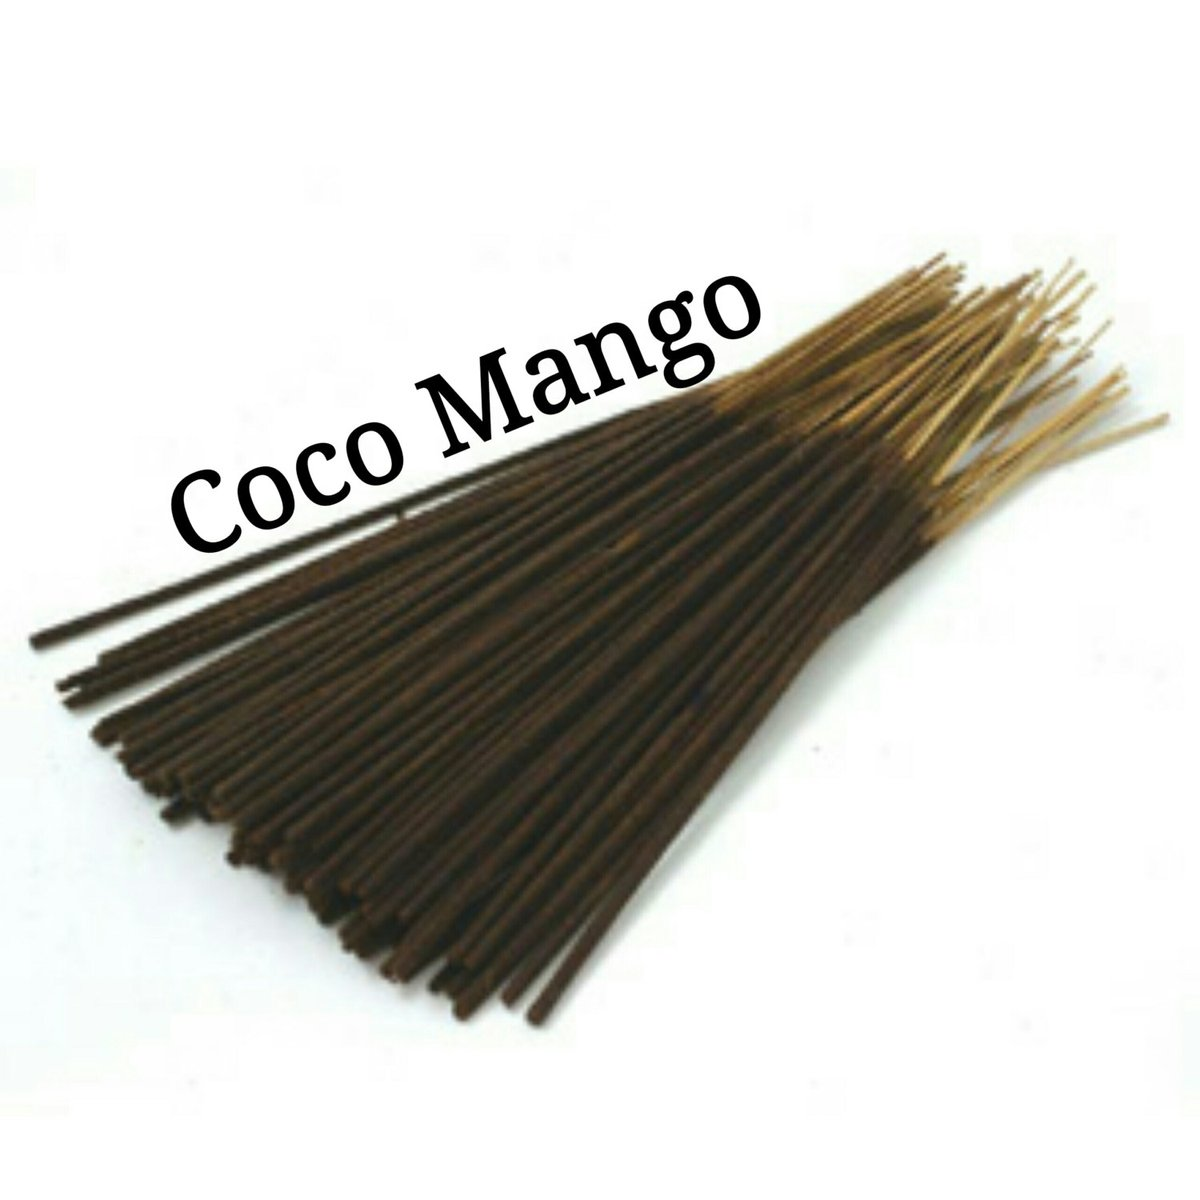 Incense Sticks | Coco Mango | 30 Incense Sticks | Incense Bundle  #GiftShopSale #CyberMonday #BlackFriday #PerfumeBodyOils #HomeFragranceOil #Etsy #Incense #HerbalRemedies #AromatherapyOil #Wedding #11InchIncense